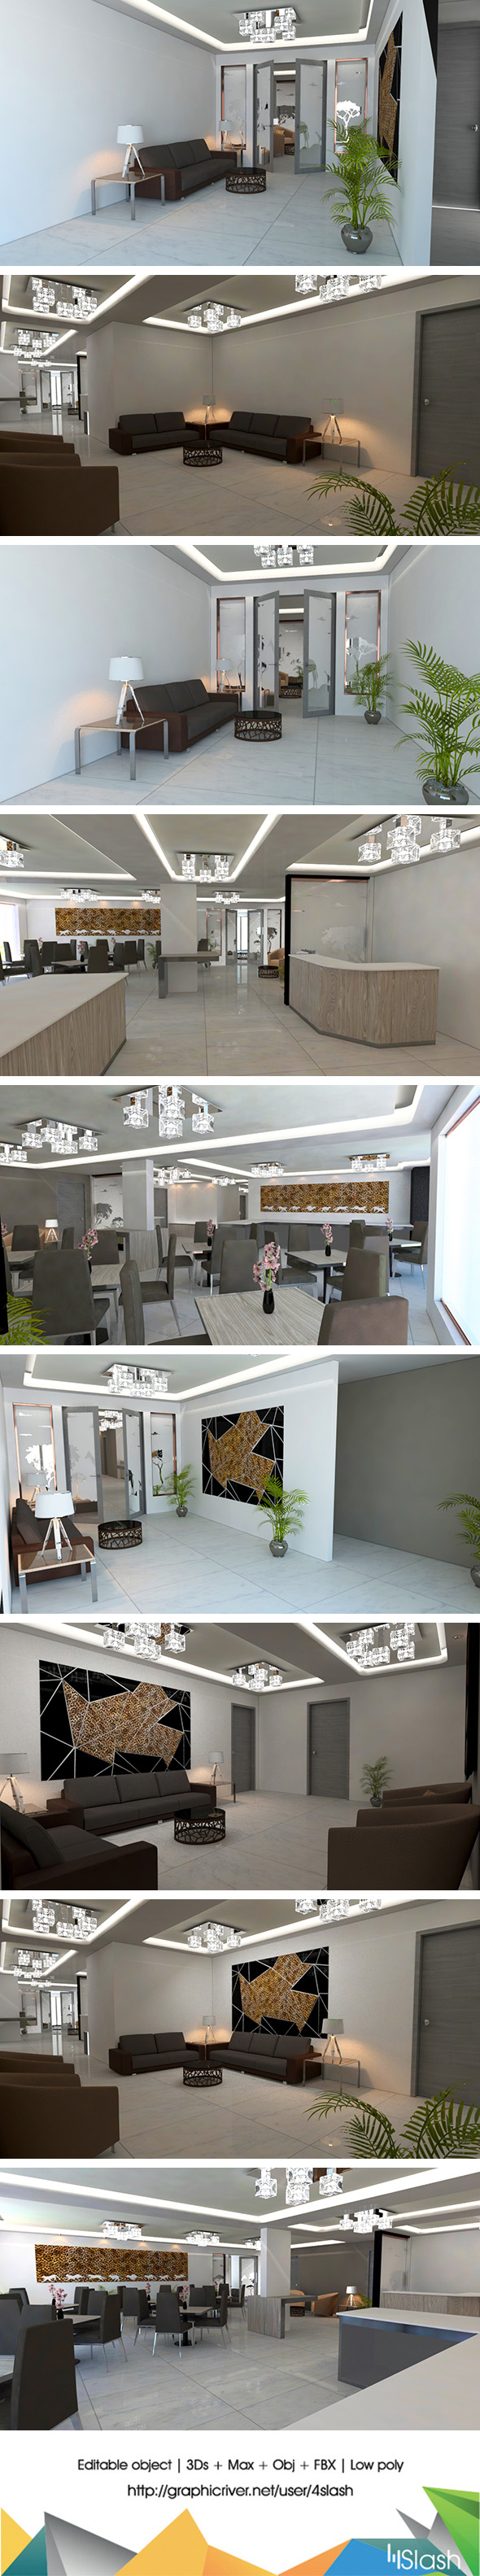 3d Office Interior - 3DOcean Item for Sale